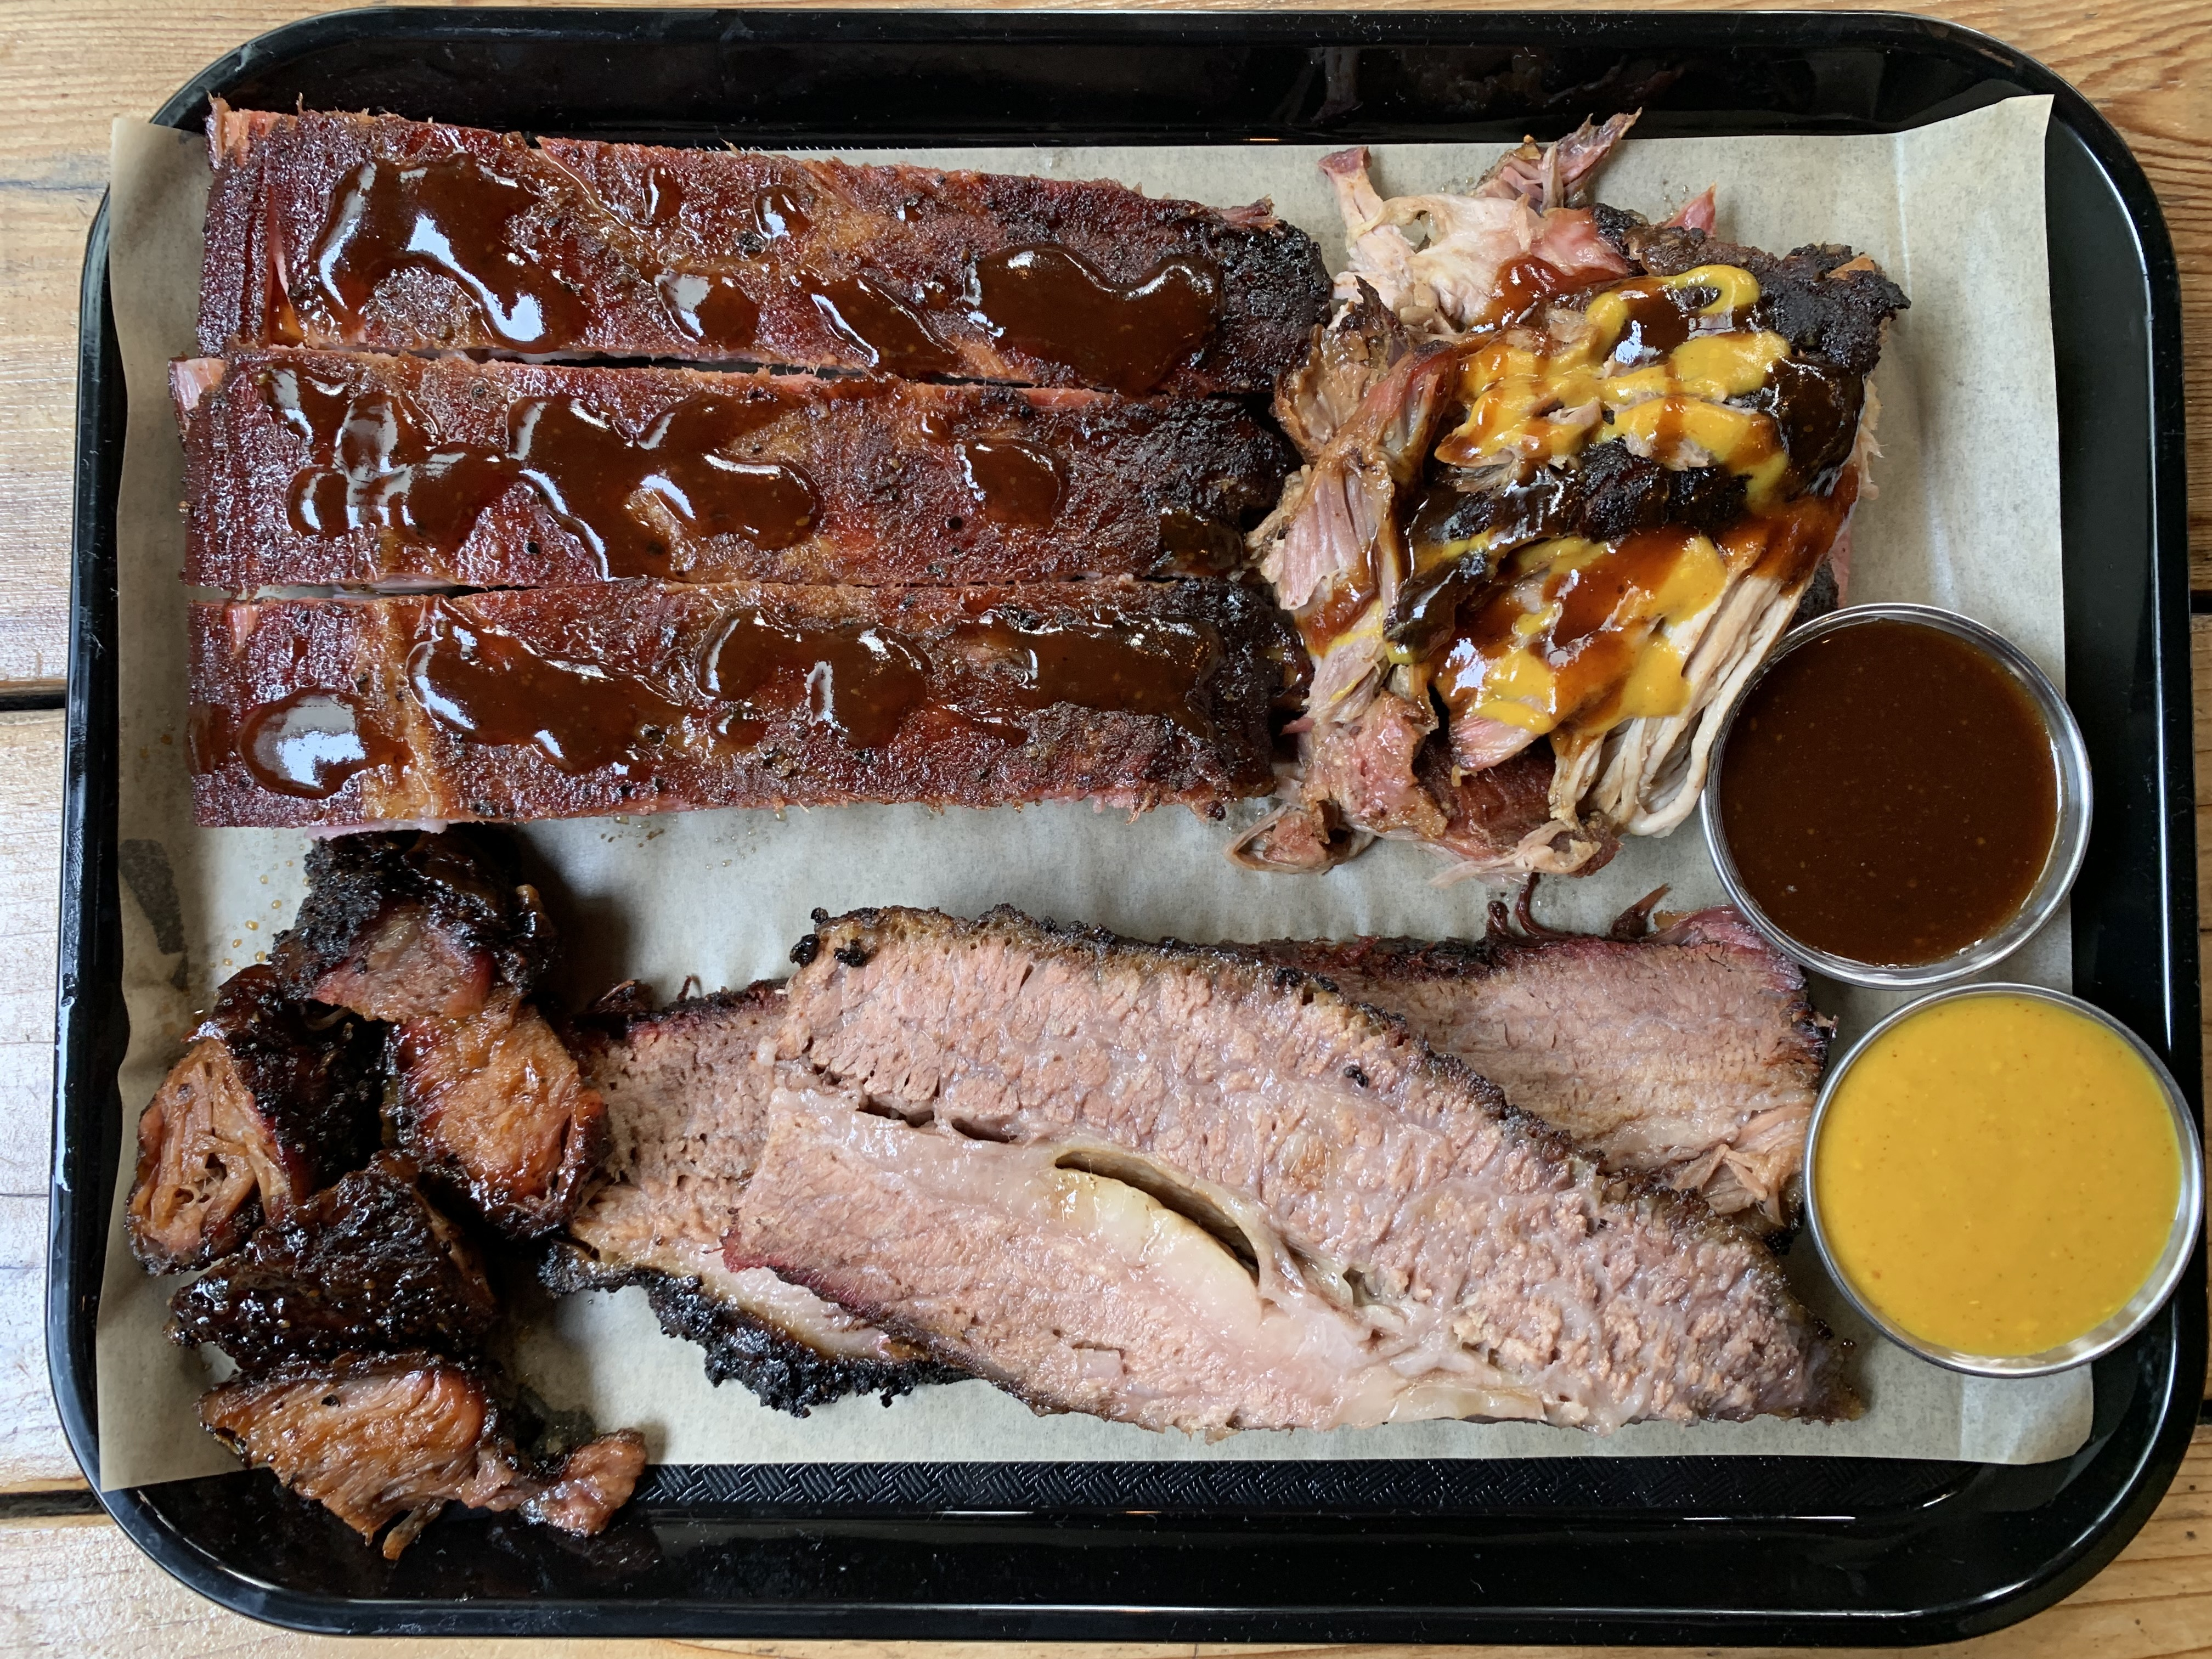 A platter of barbecue—clockwise featuring pork ribs, pulled pork, red and yellow barbecue sauces, slabs of brisket, and sauced burnt ends.